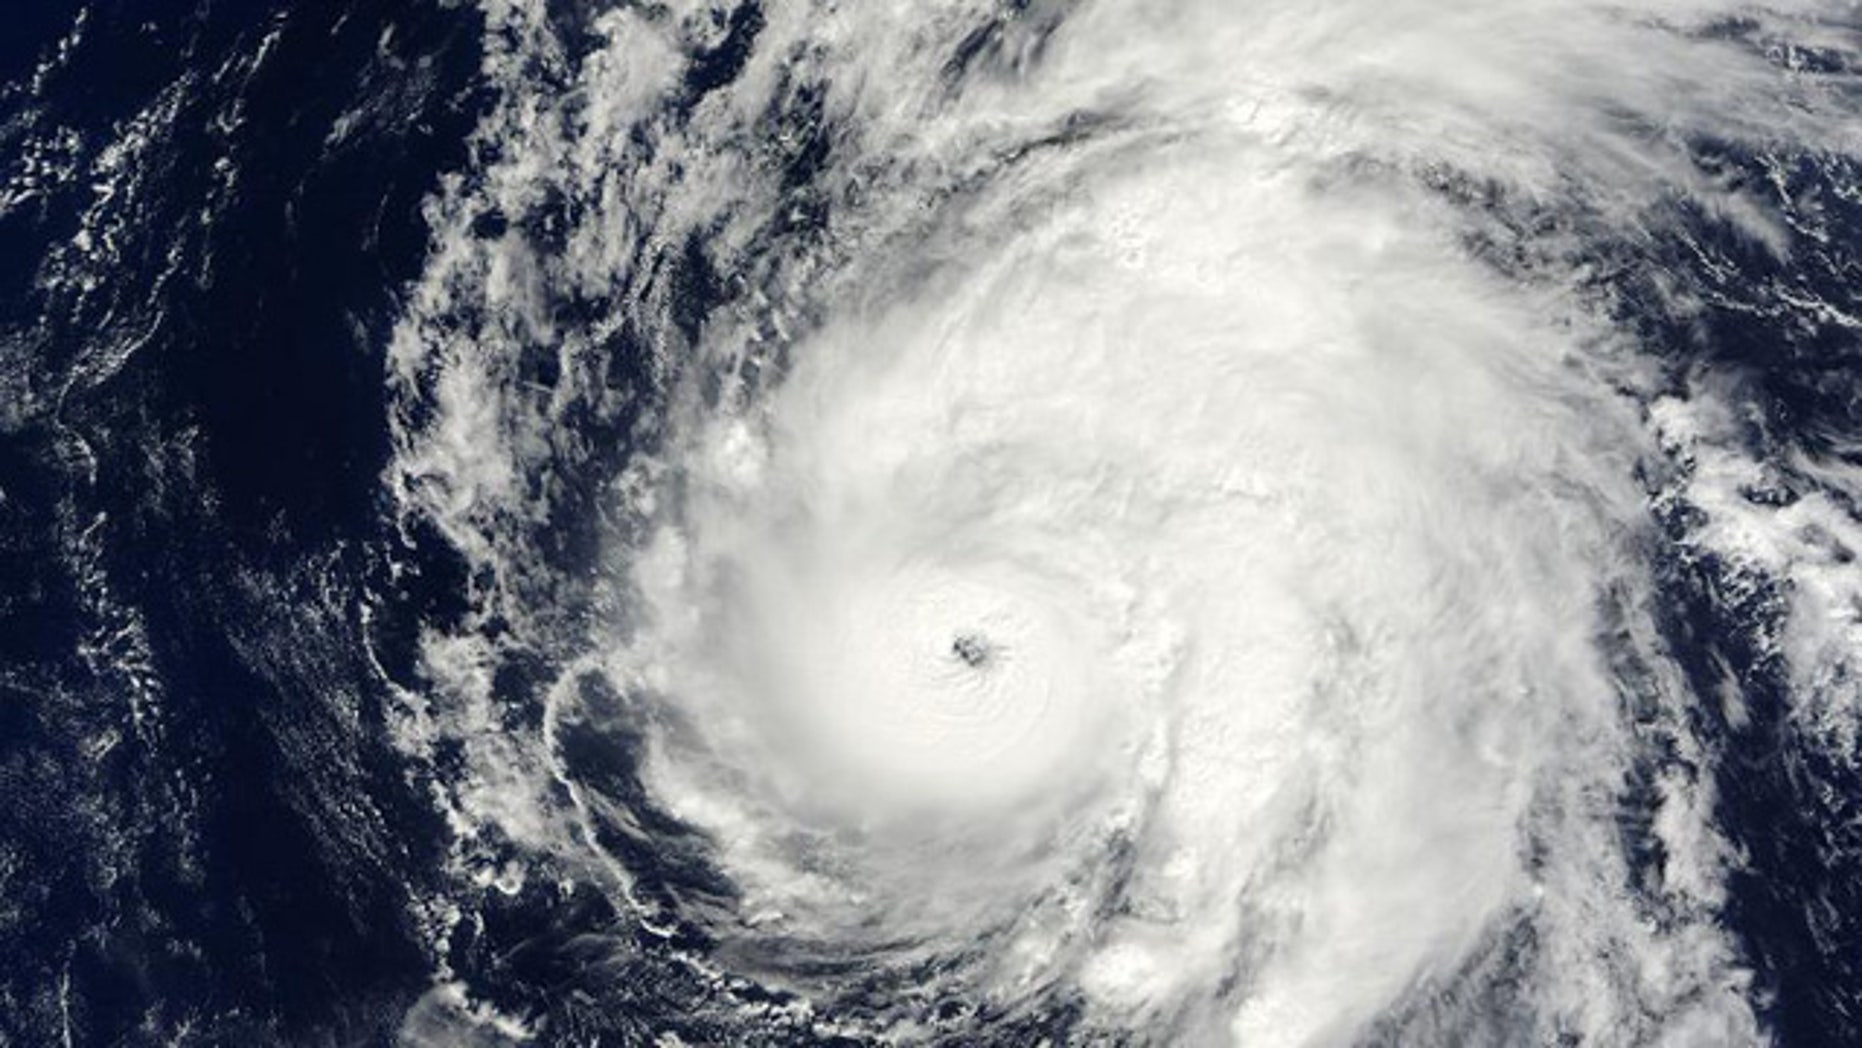 Hurricane Neki swirls through the oceans west of Hawaii.